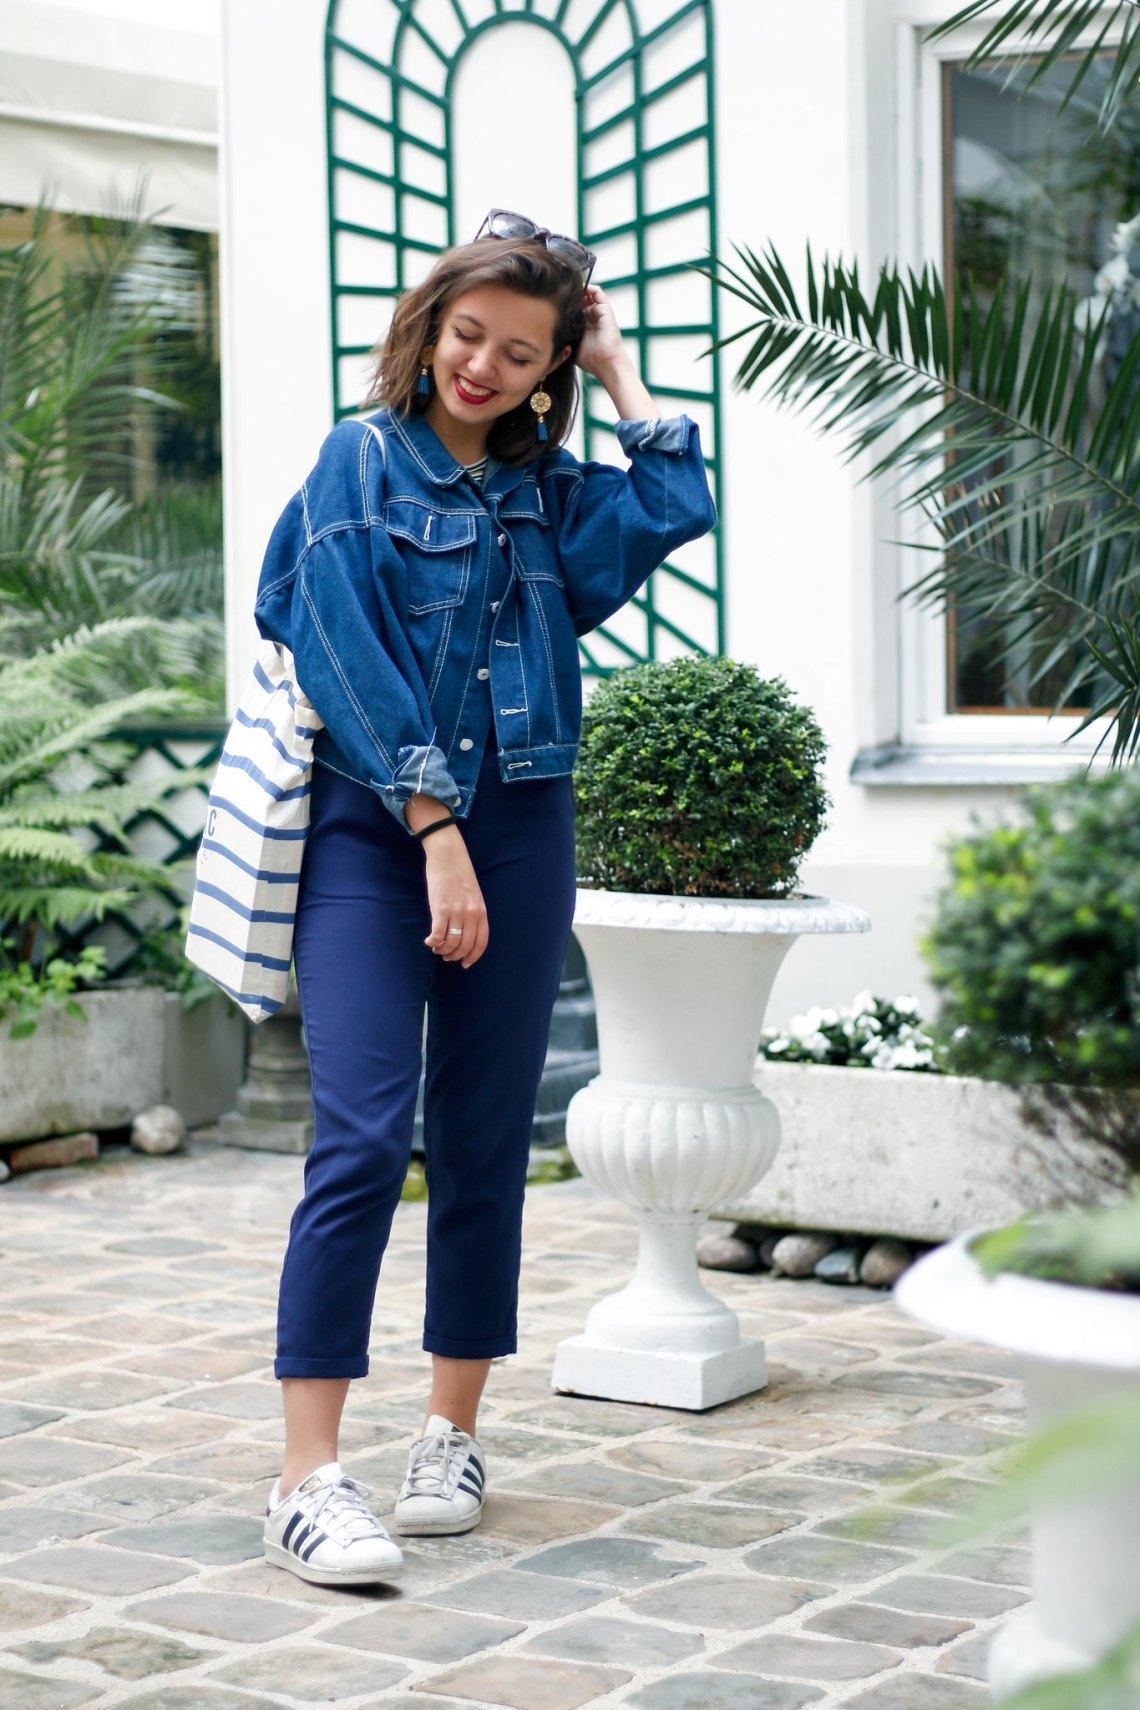 8-look-salopette-veste-en-jean-superstars-adidas